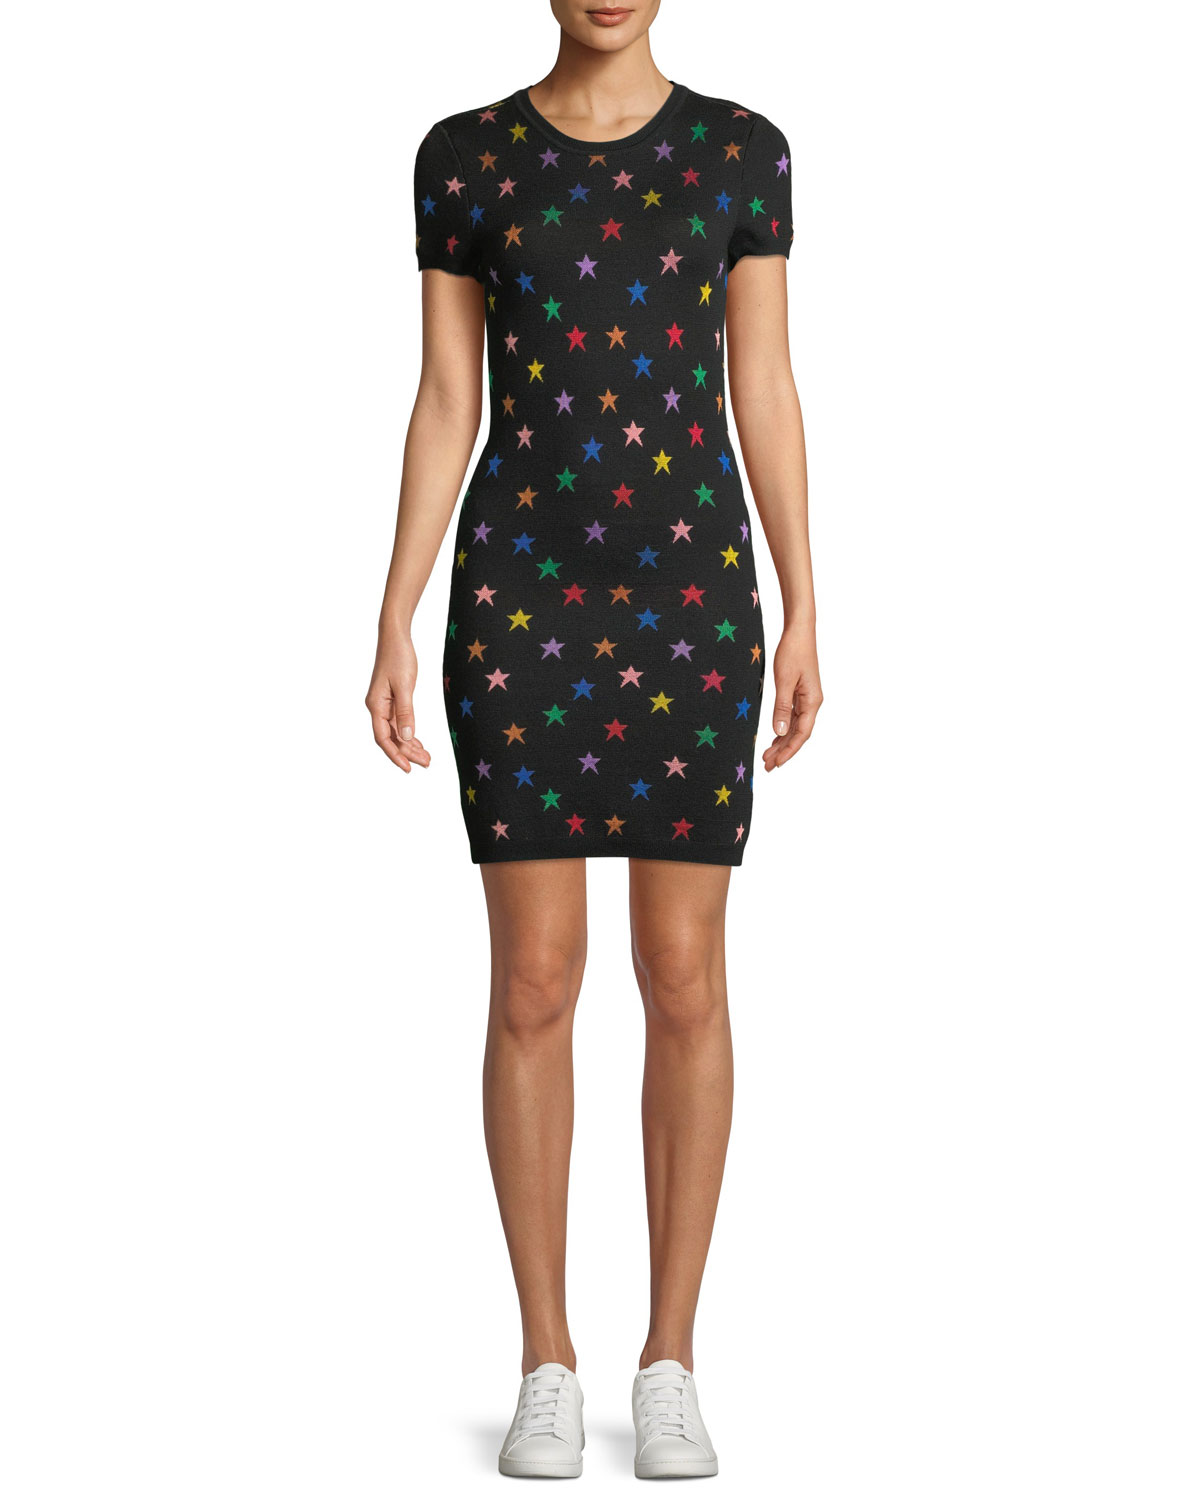 Hayden Short-Sleeve Fitted Star Jacquard Dress in Black/Multi